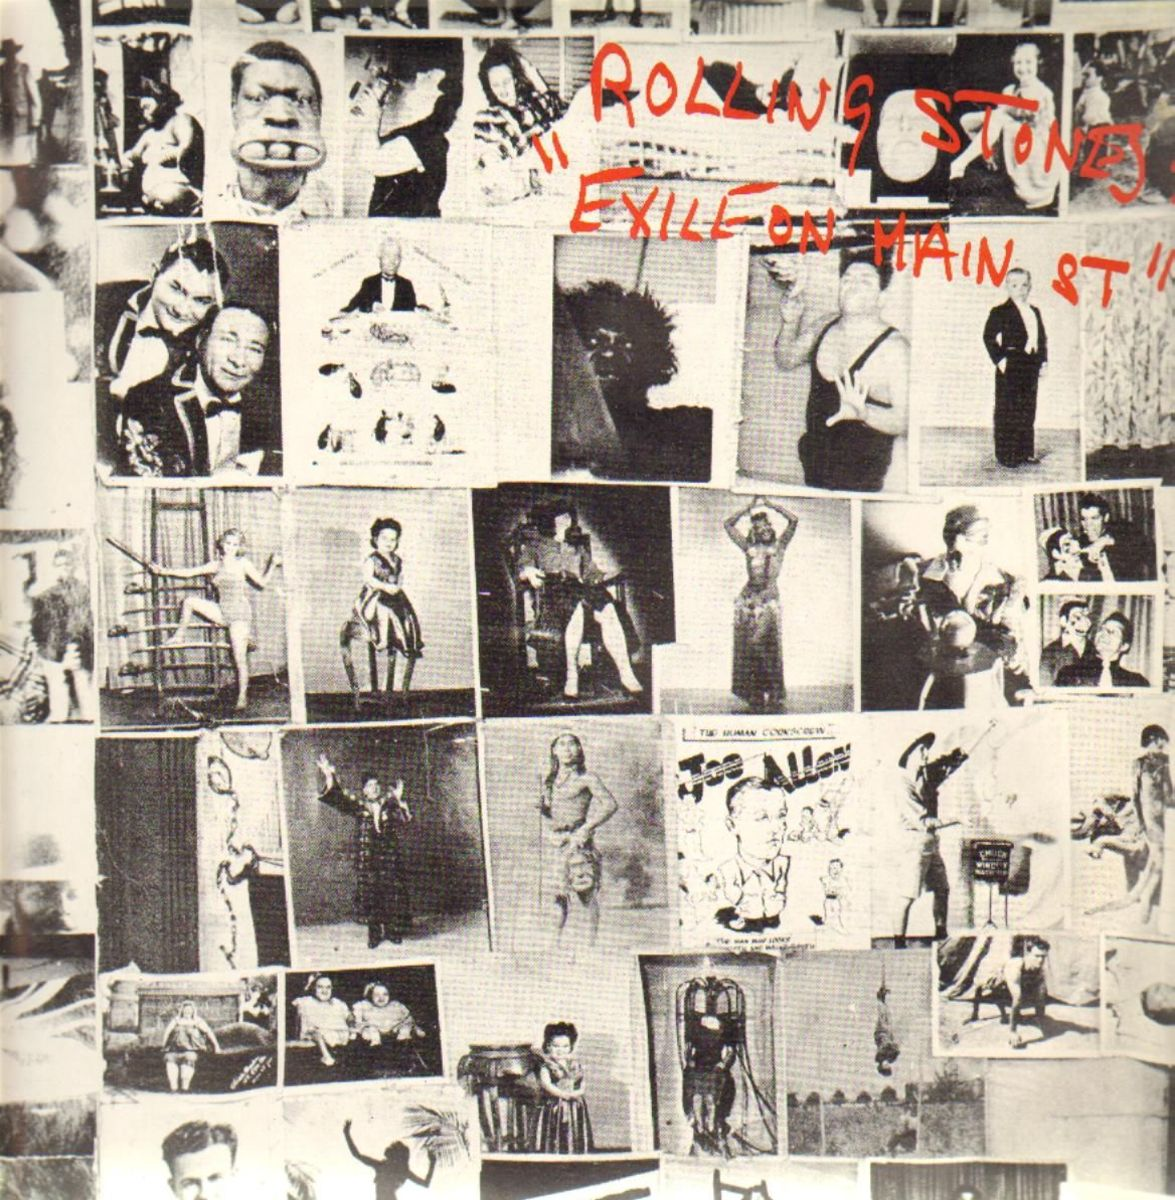 the_rolling_stones-exile_on_main_st copy